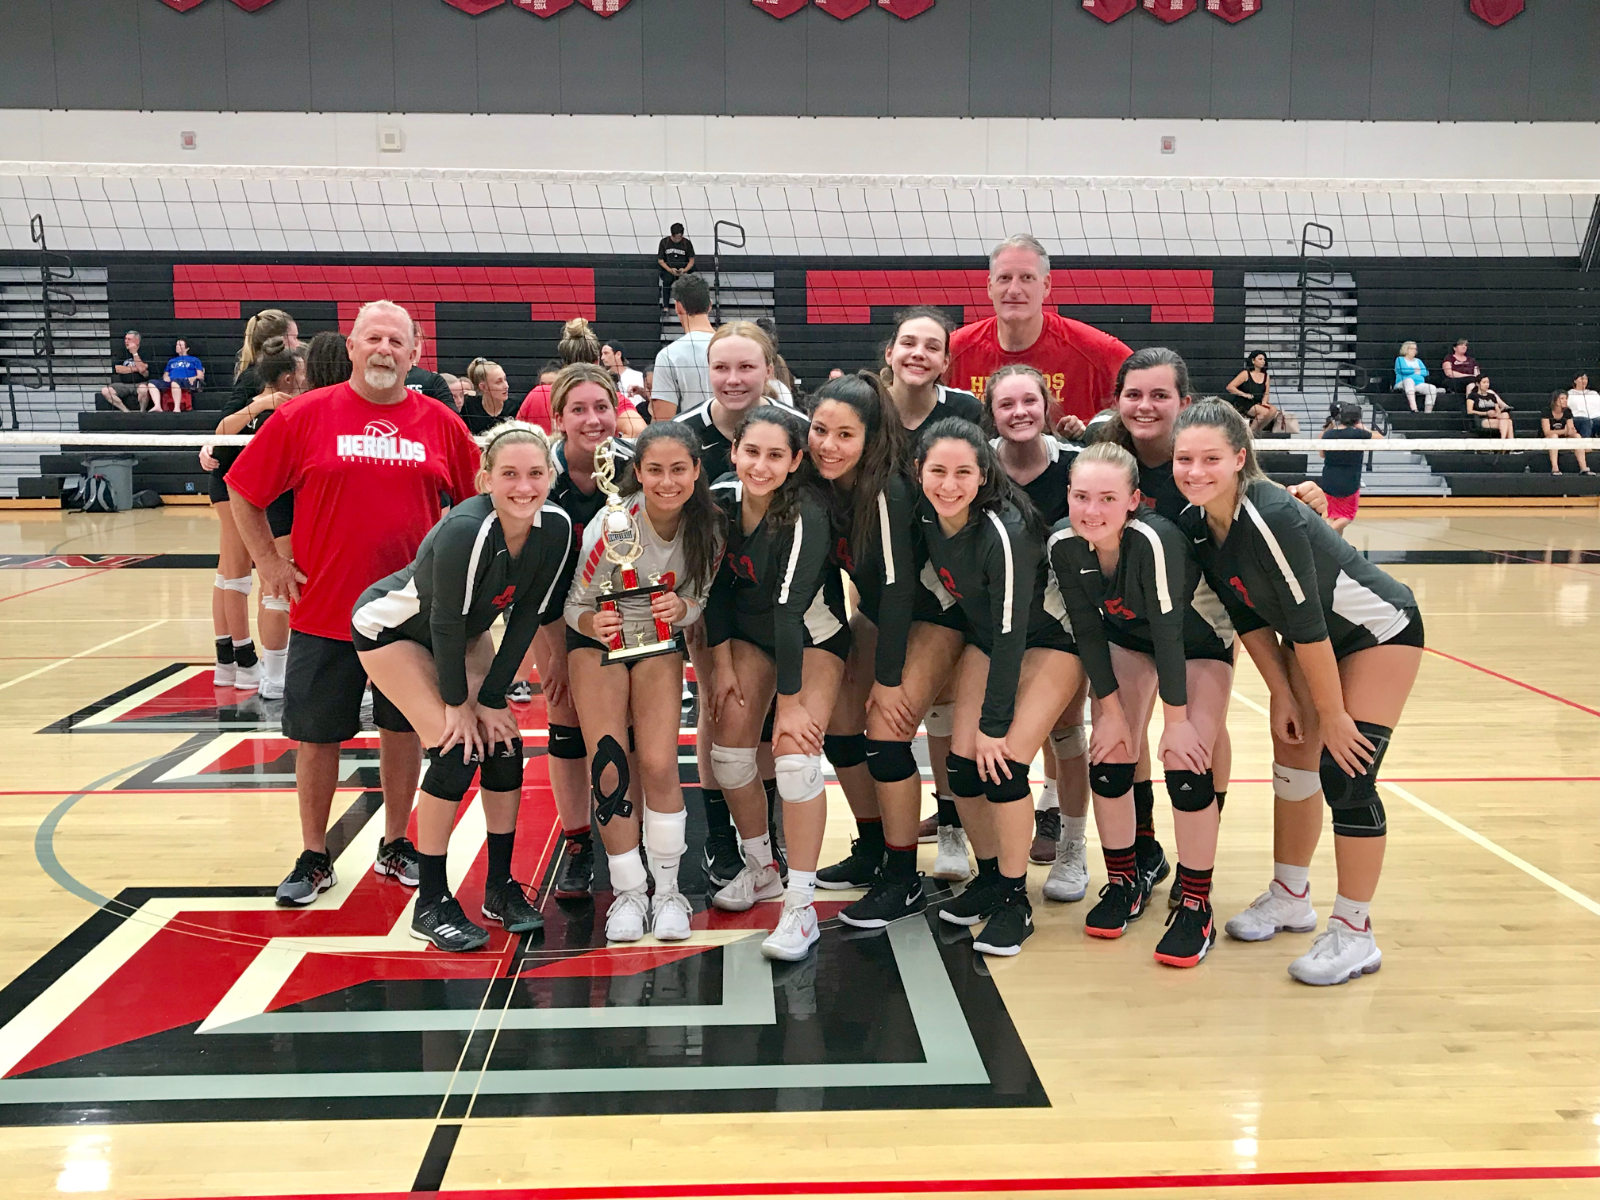 HERALDS GIRLS VOLLEYBALL ON TO CIF-SS PLAYOFFS